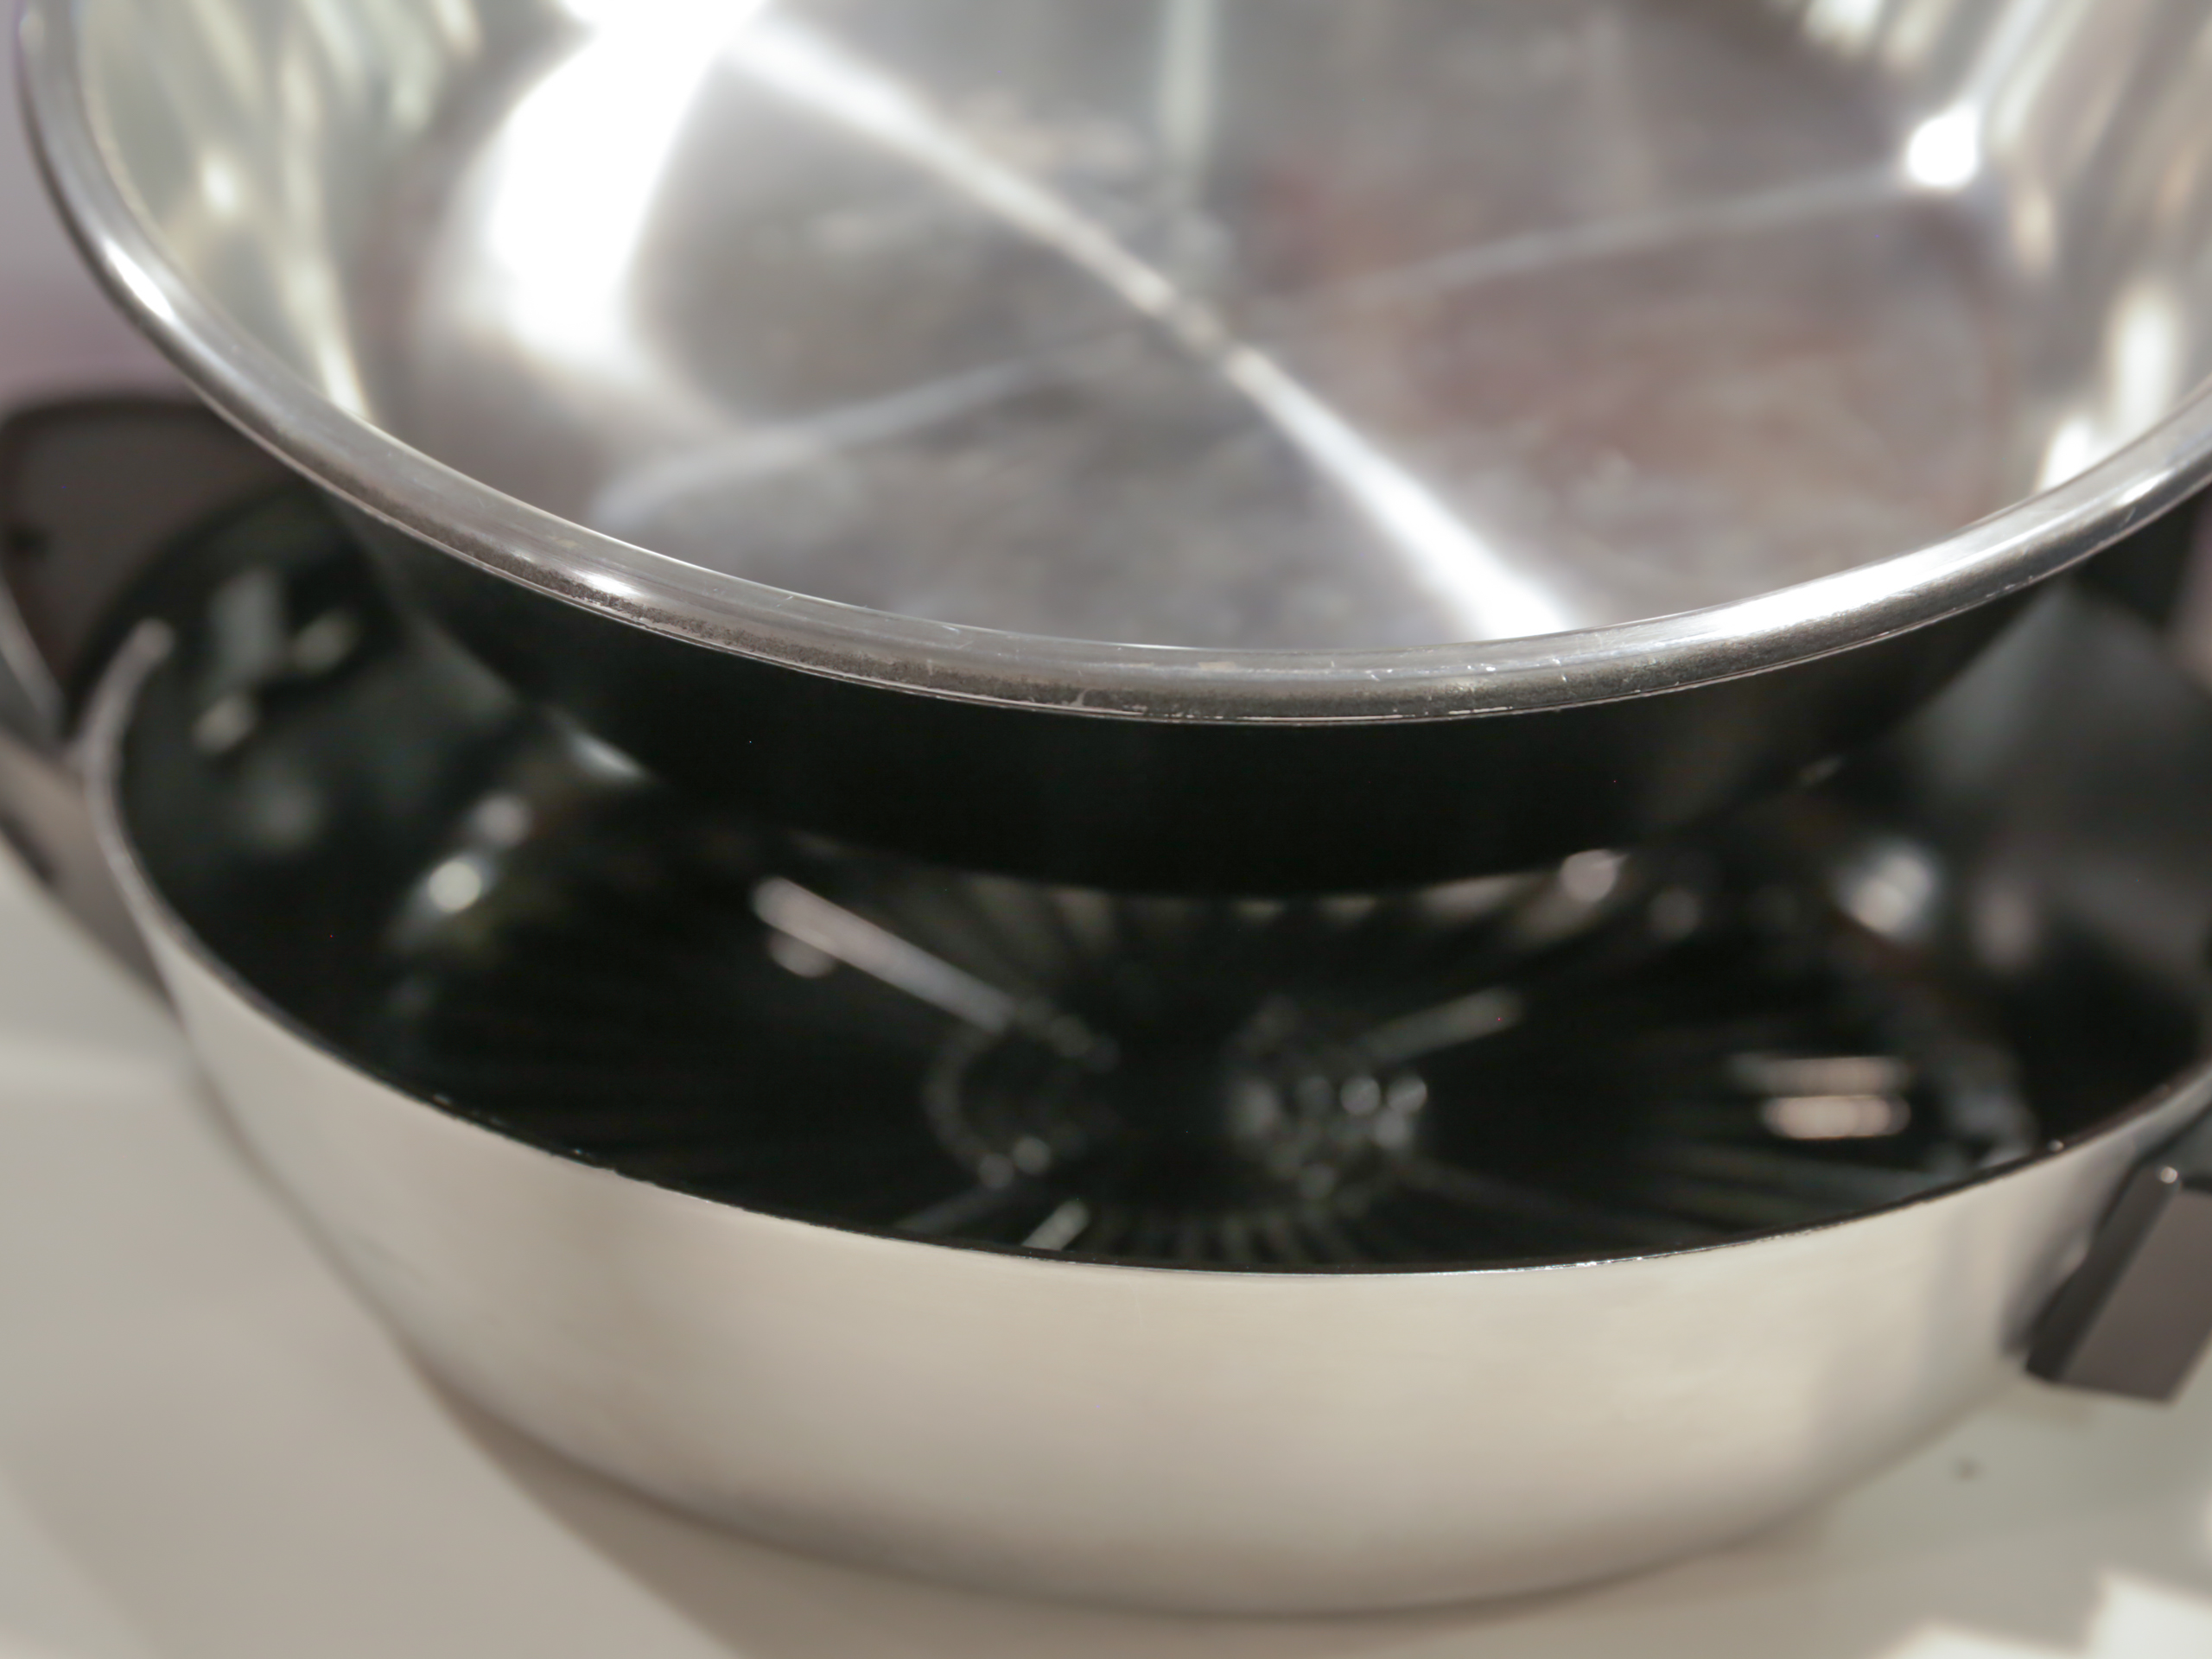 smartypans-product-photos-1.jpg